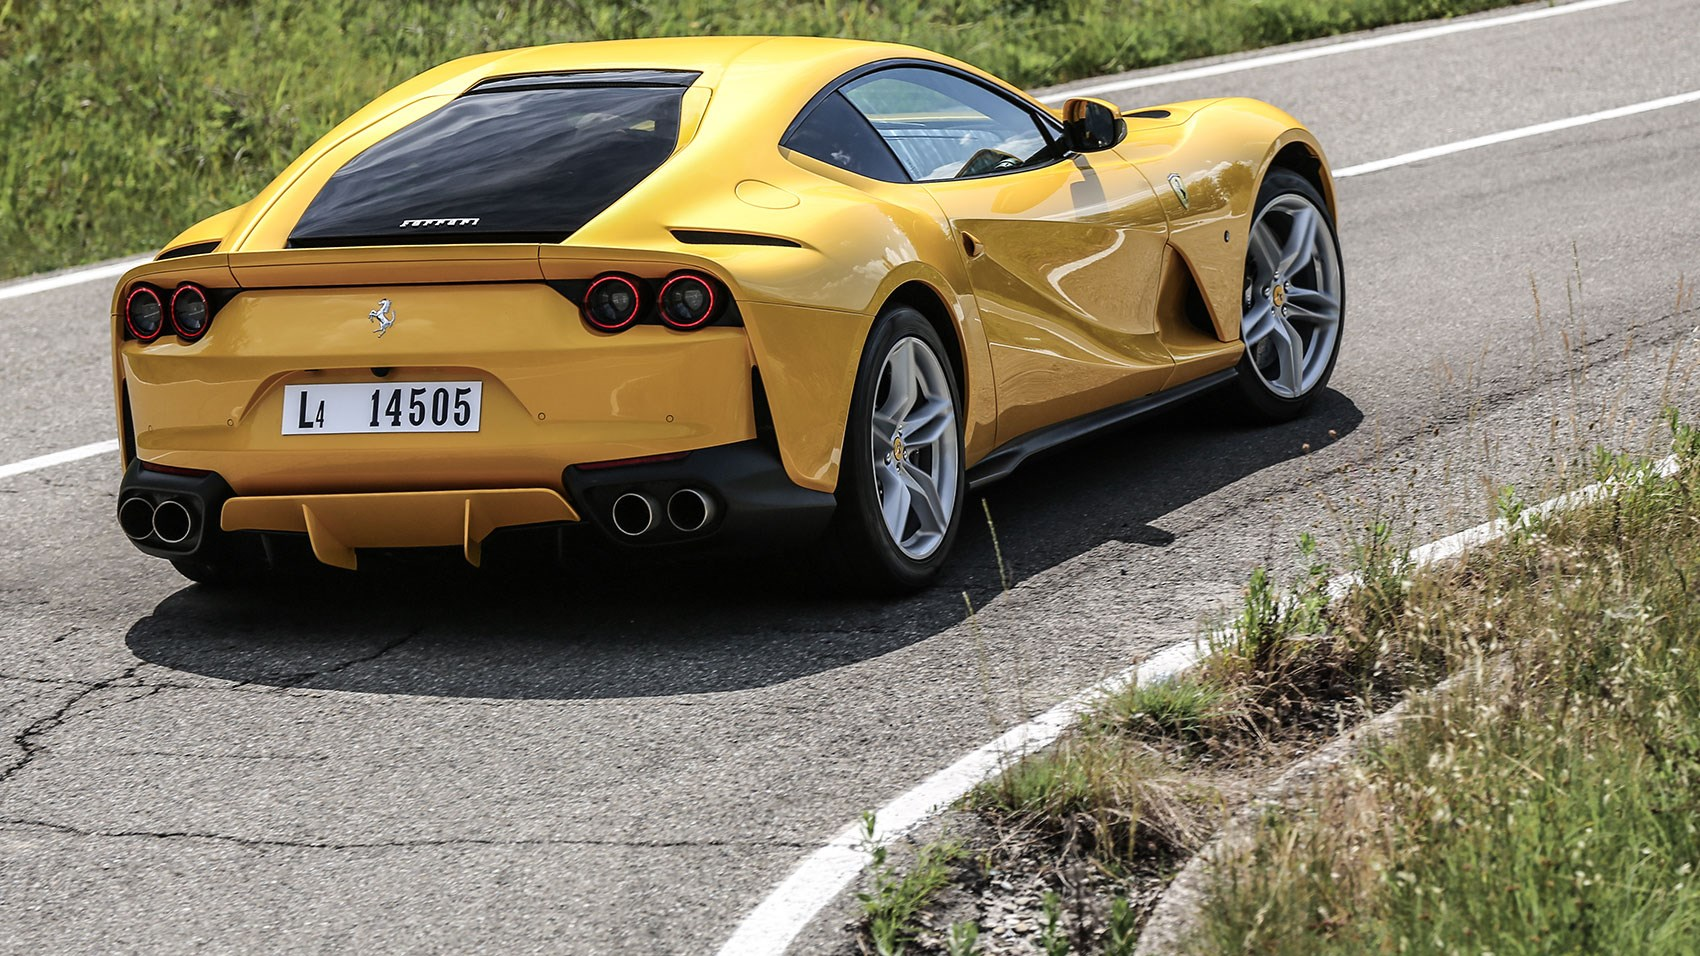 Ferrari 812 Superfast specs: the fastest front-engined V12 money can buy